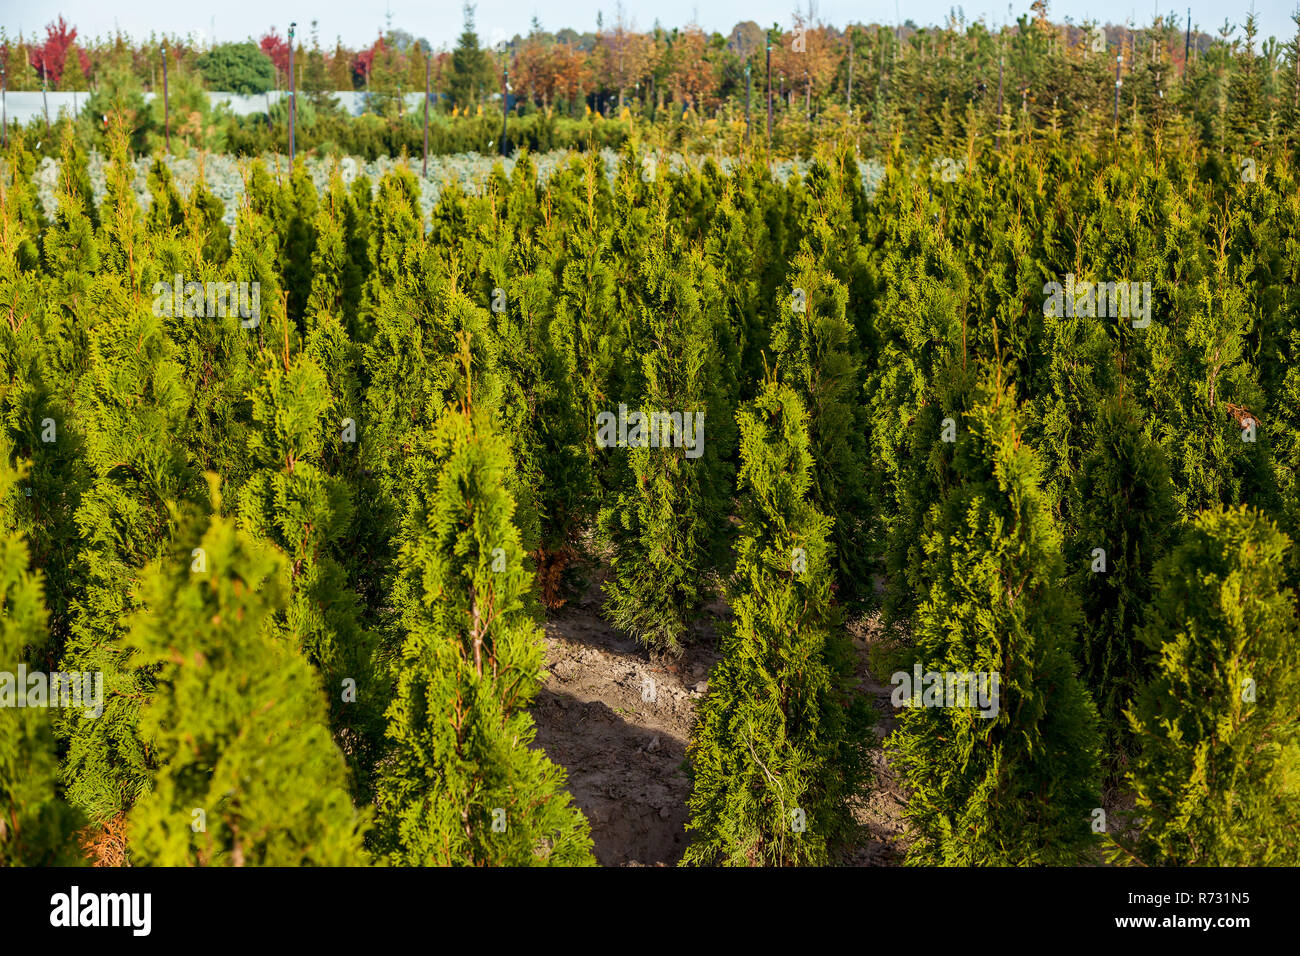 Seedlings of various trees in pots in a garden shop. Sale of many varieties of coniferous and deciduous trees, various flowers, all to decorate your g - Stock Image